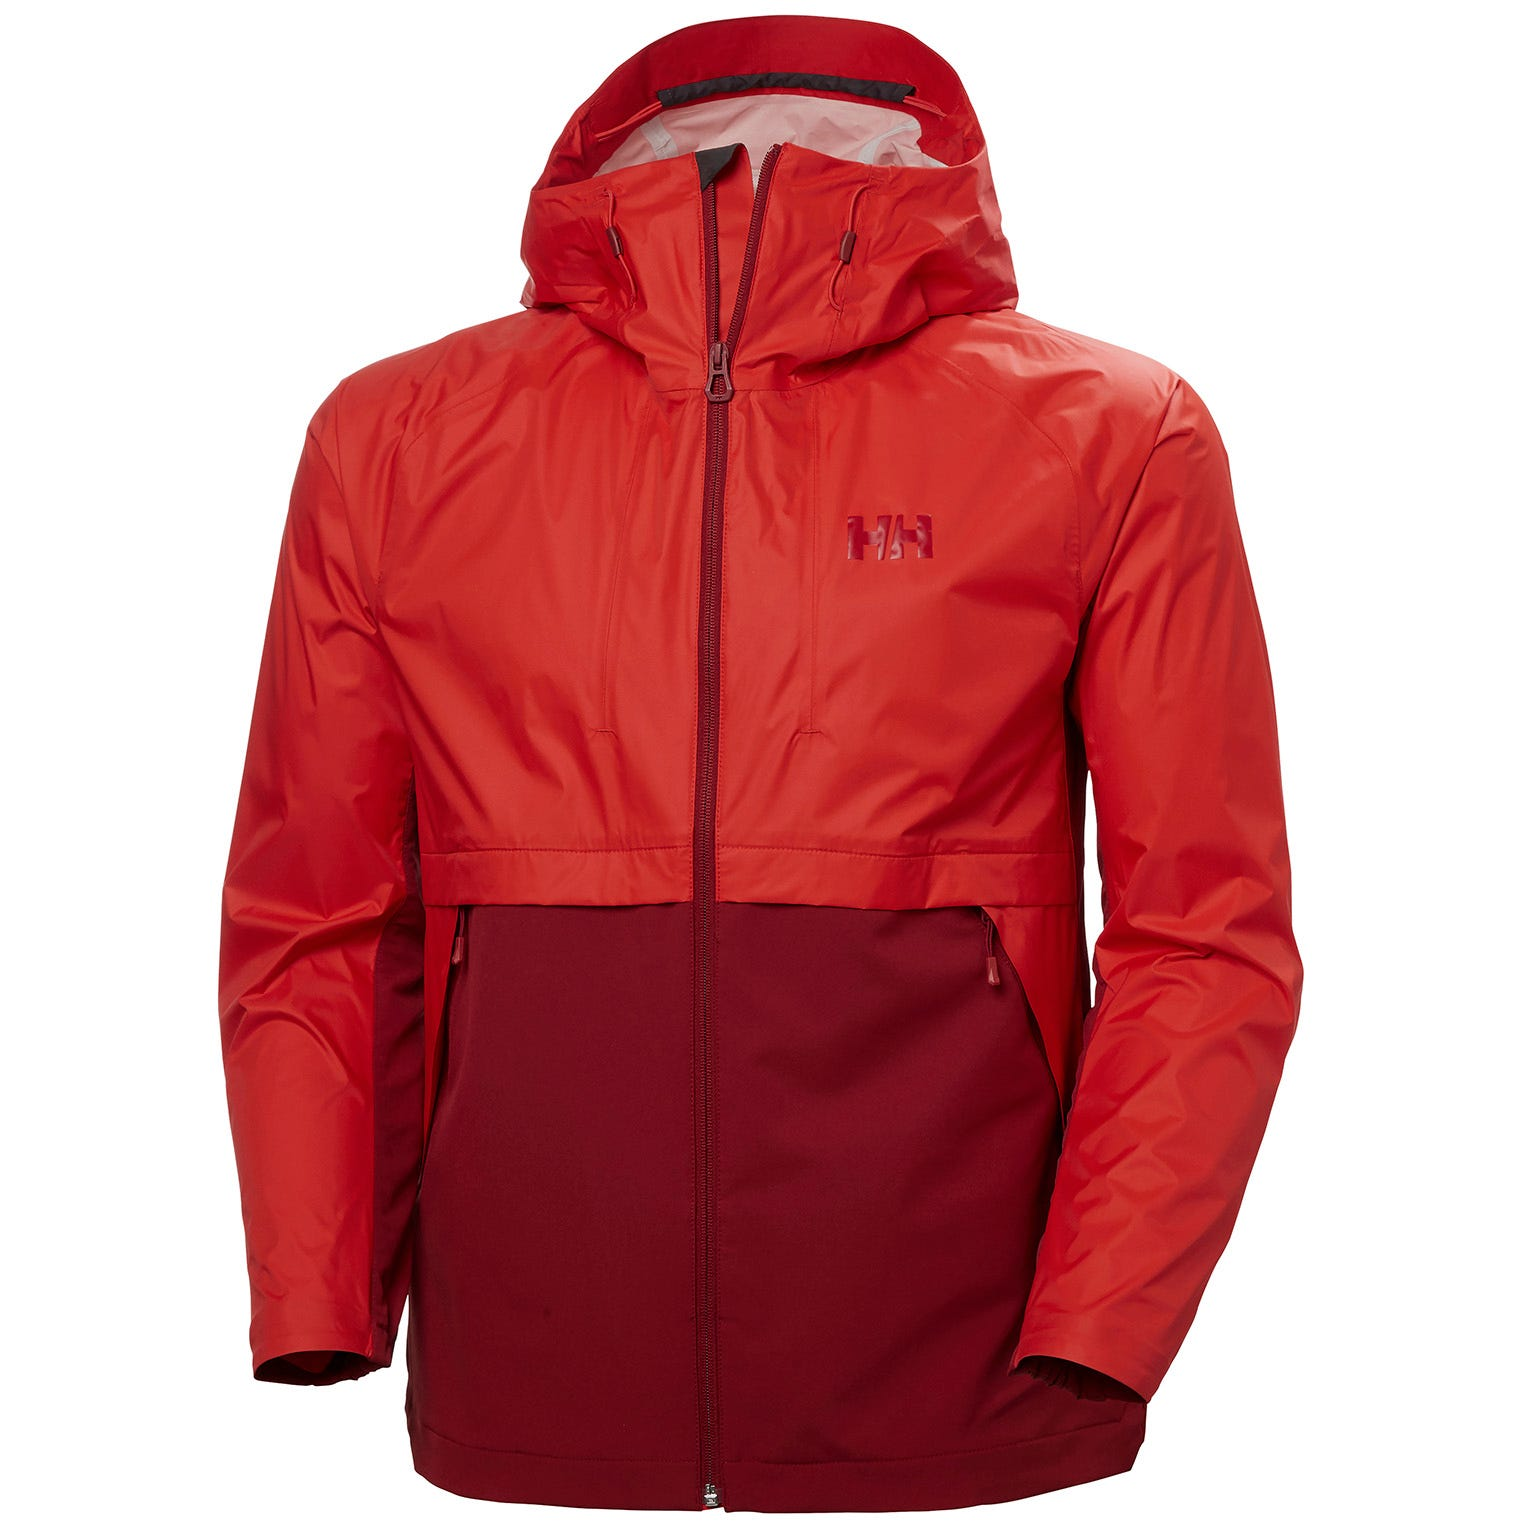 Helly Hansen Logr Jacket 2.0 Mens Hiking Red M